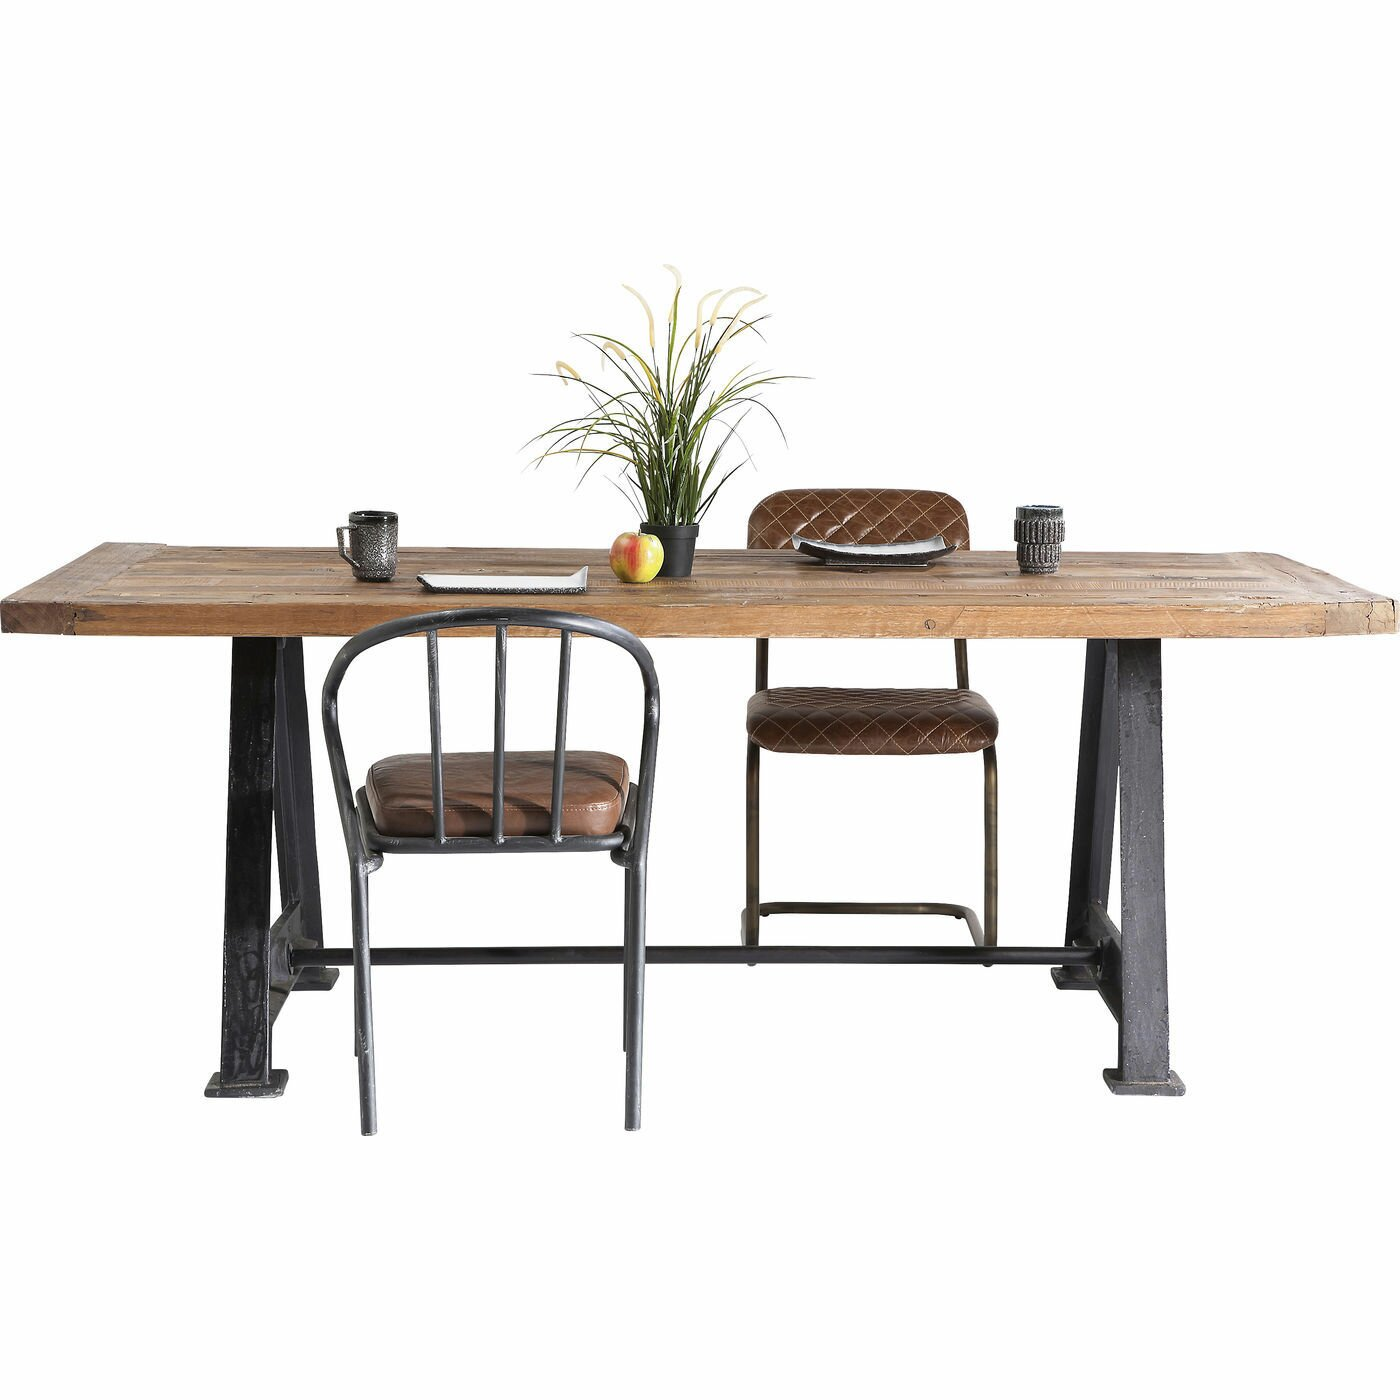 Kare design railway dining table wayfair uk - Table kare design ...